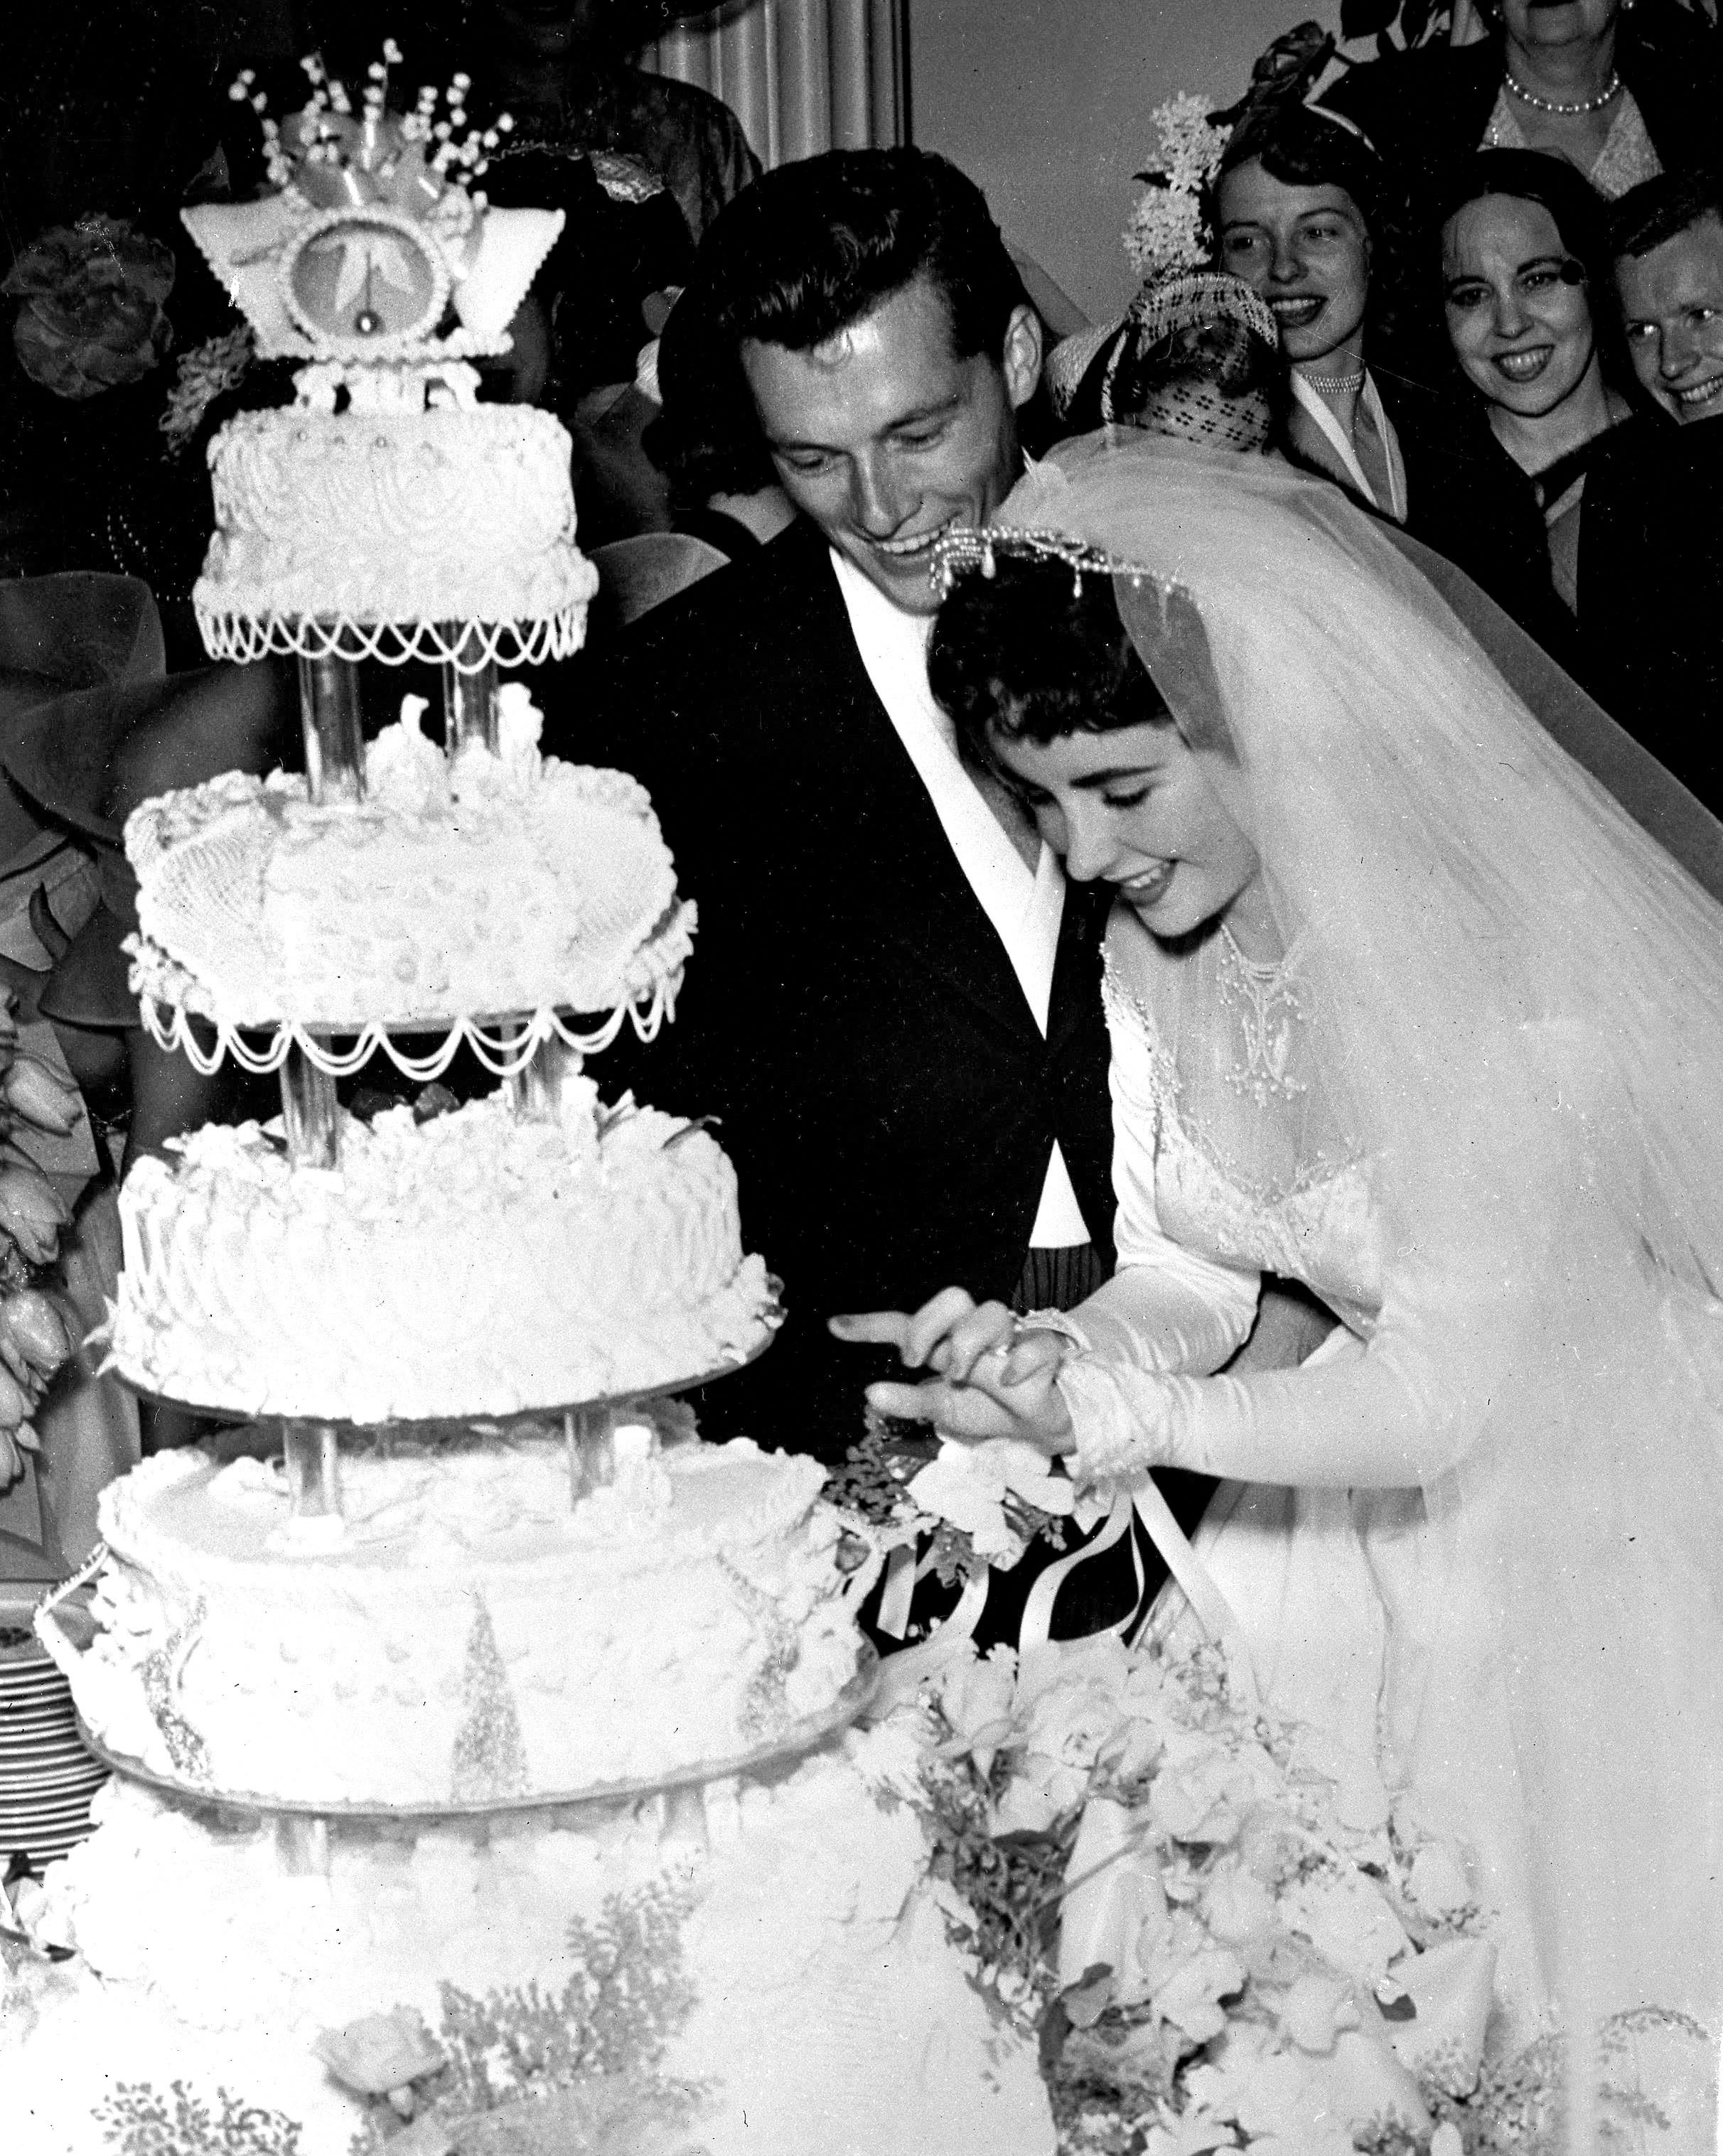 celebrity-vintage-wedding-cakes-liz-taylor-79666956-1015.jpg